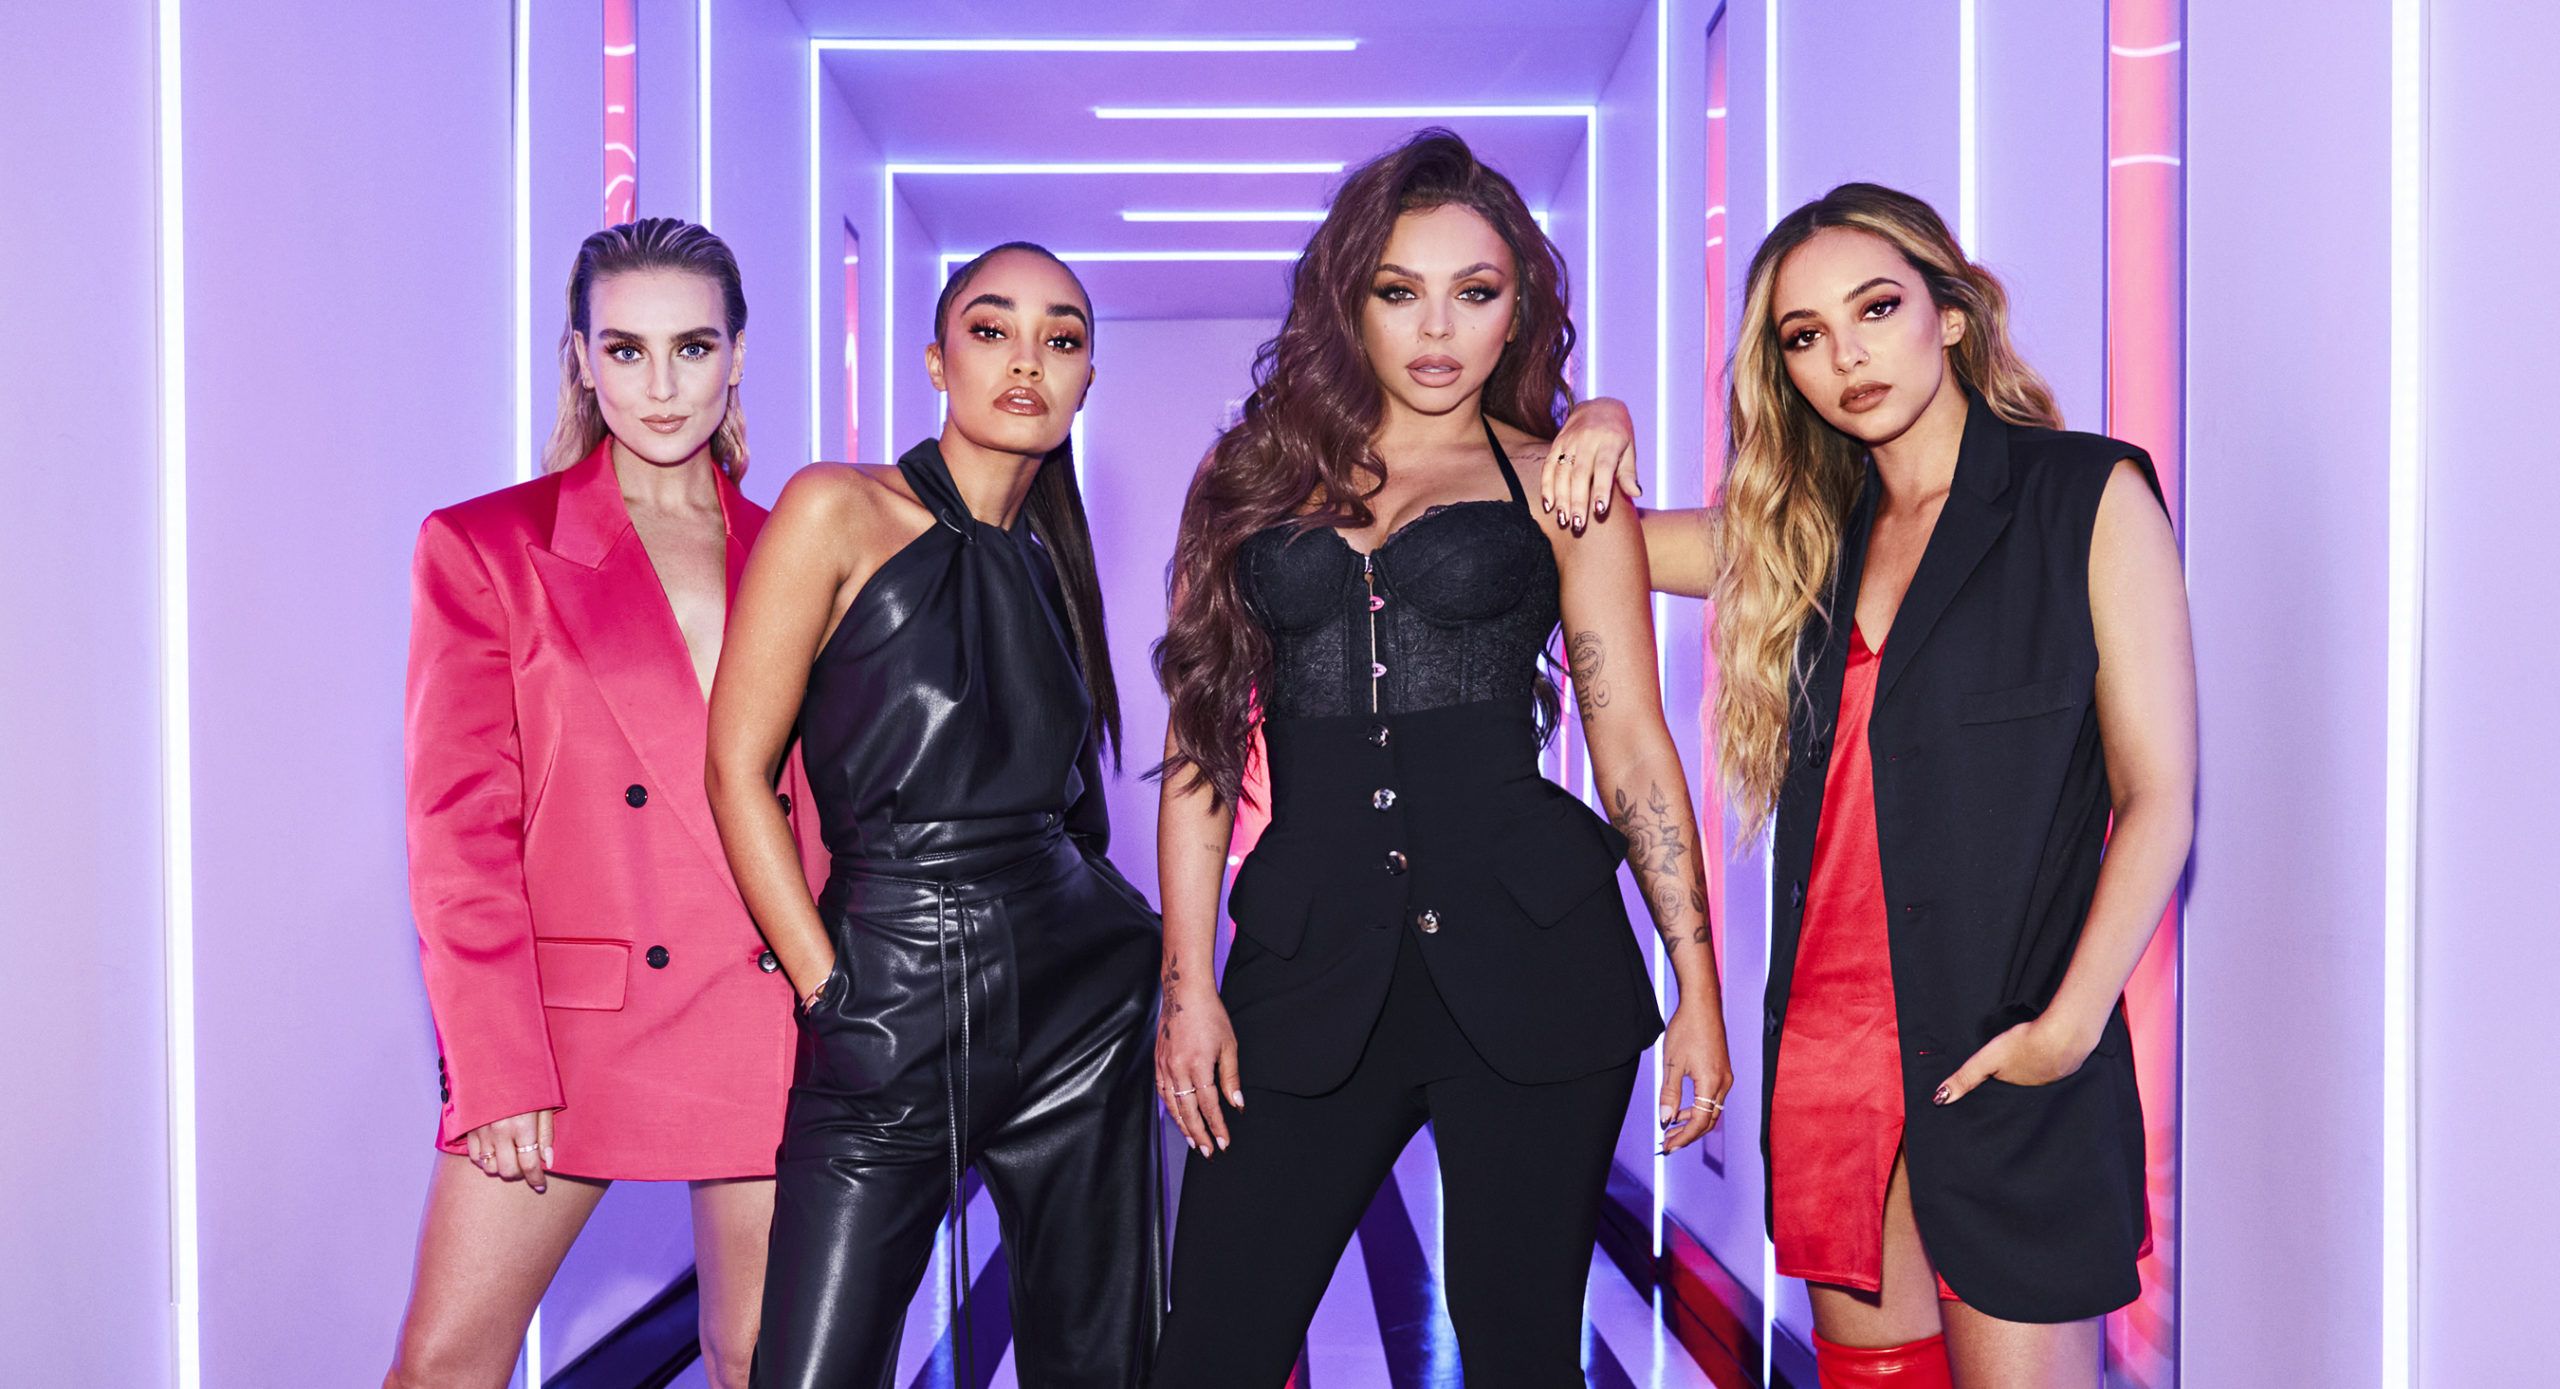 Little Mix The Search praised by viewers as it starts on BBC One